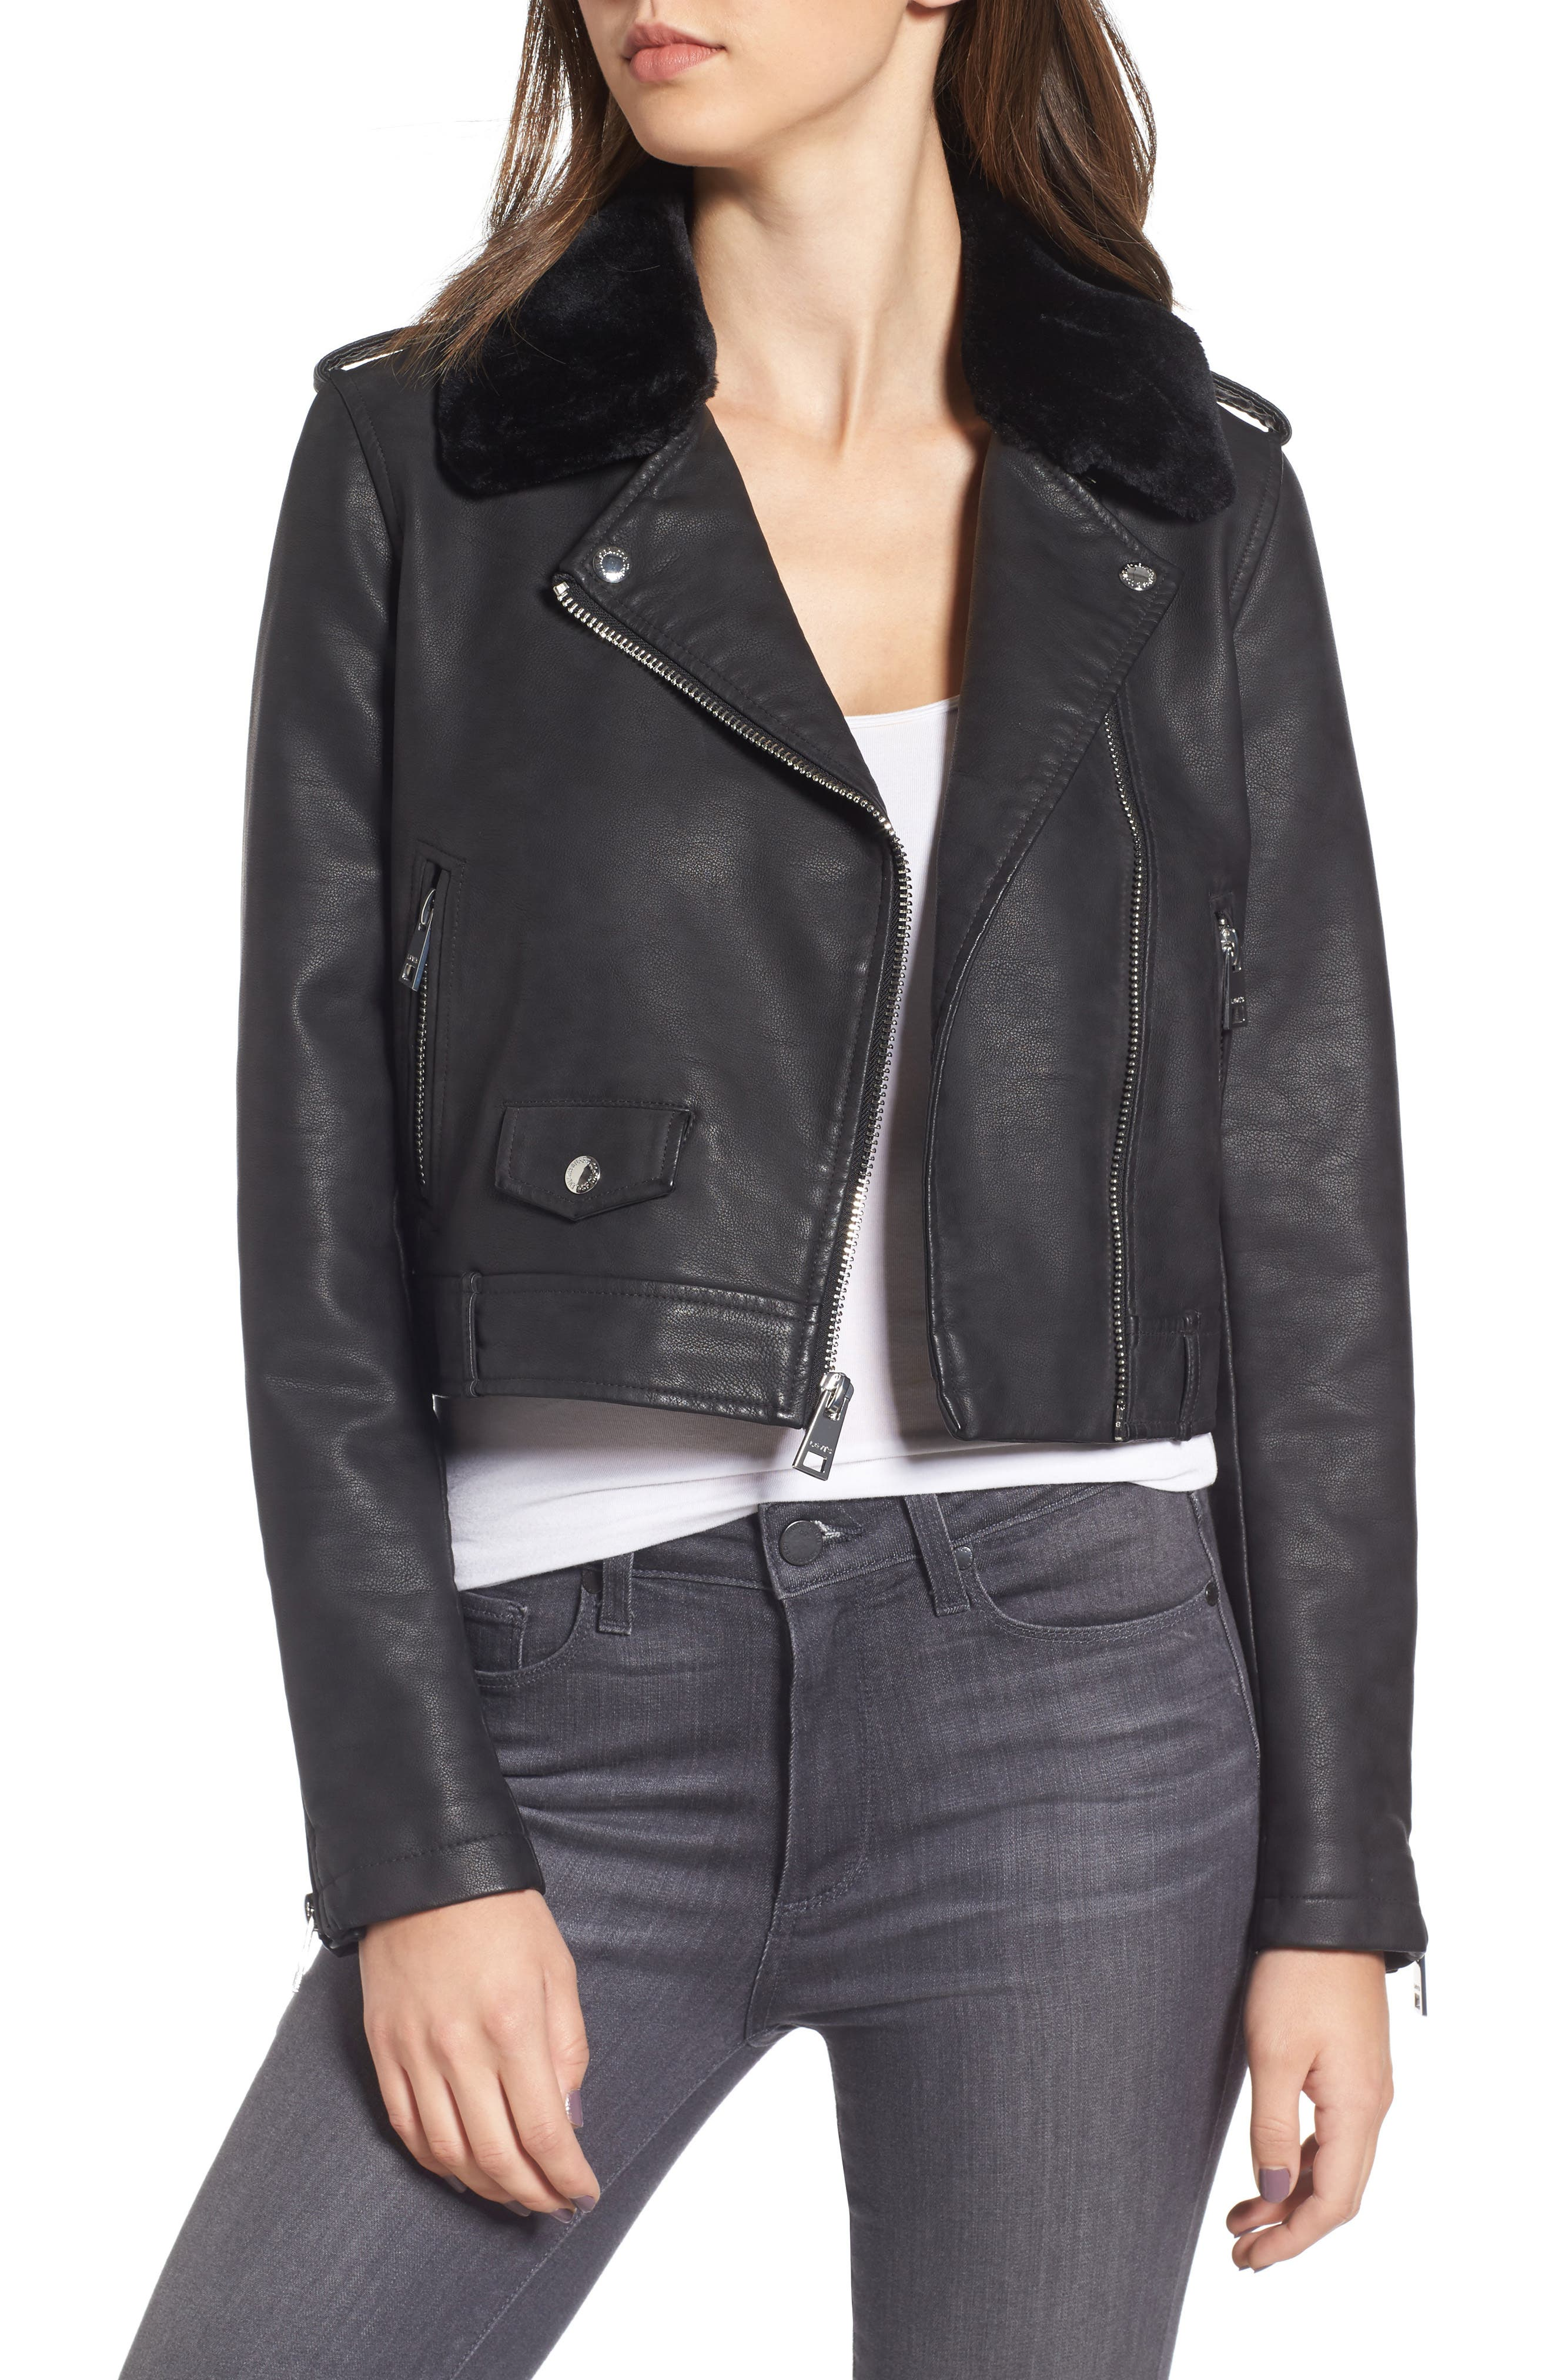 Levis<sup>®</sup> Sherpa Faux Leather Moto Jacket with Faux Fur Collar,                         Main,                         color, Black